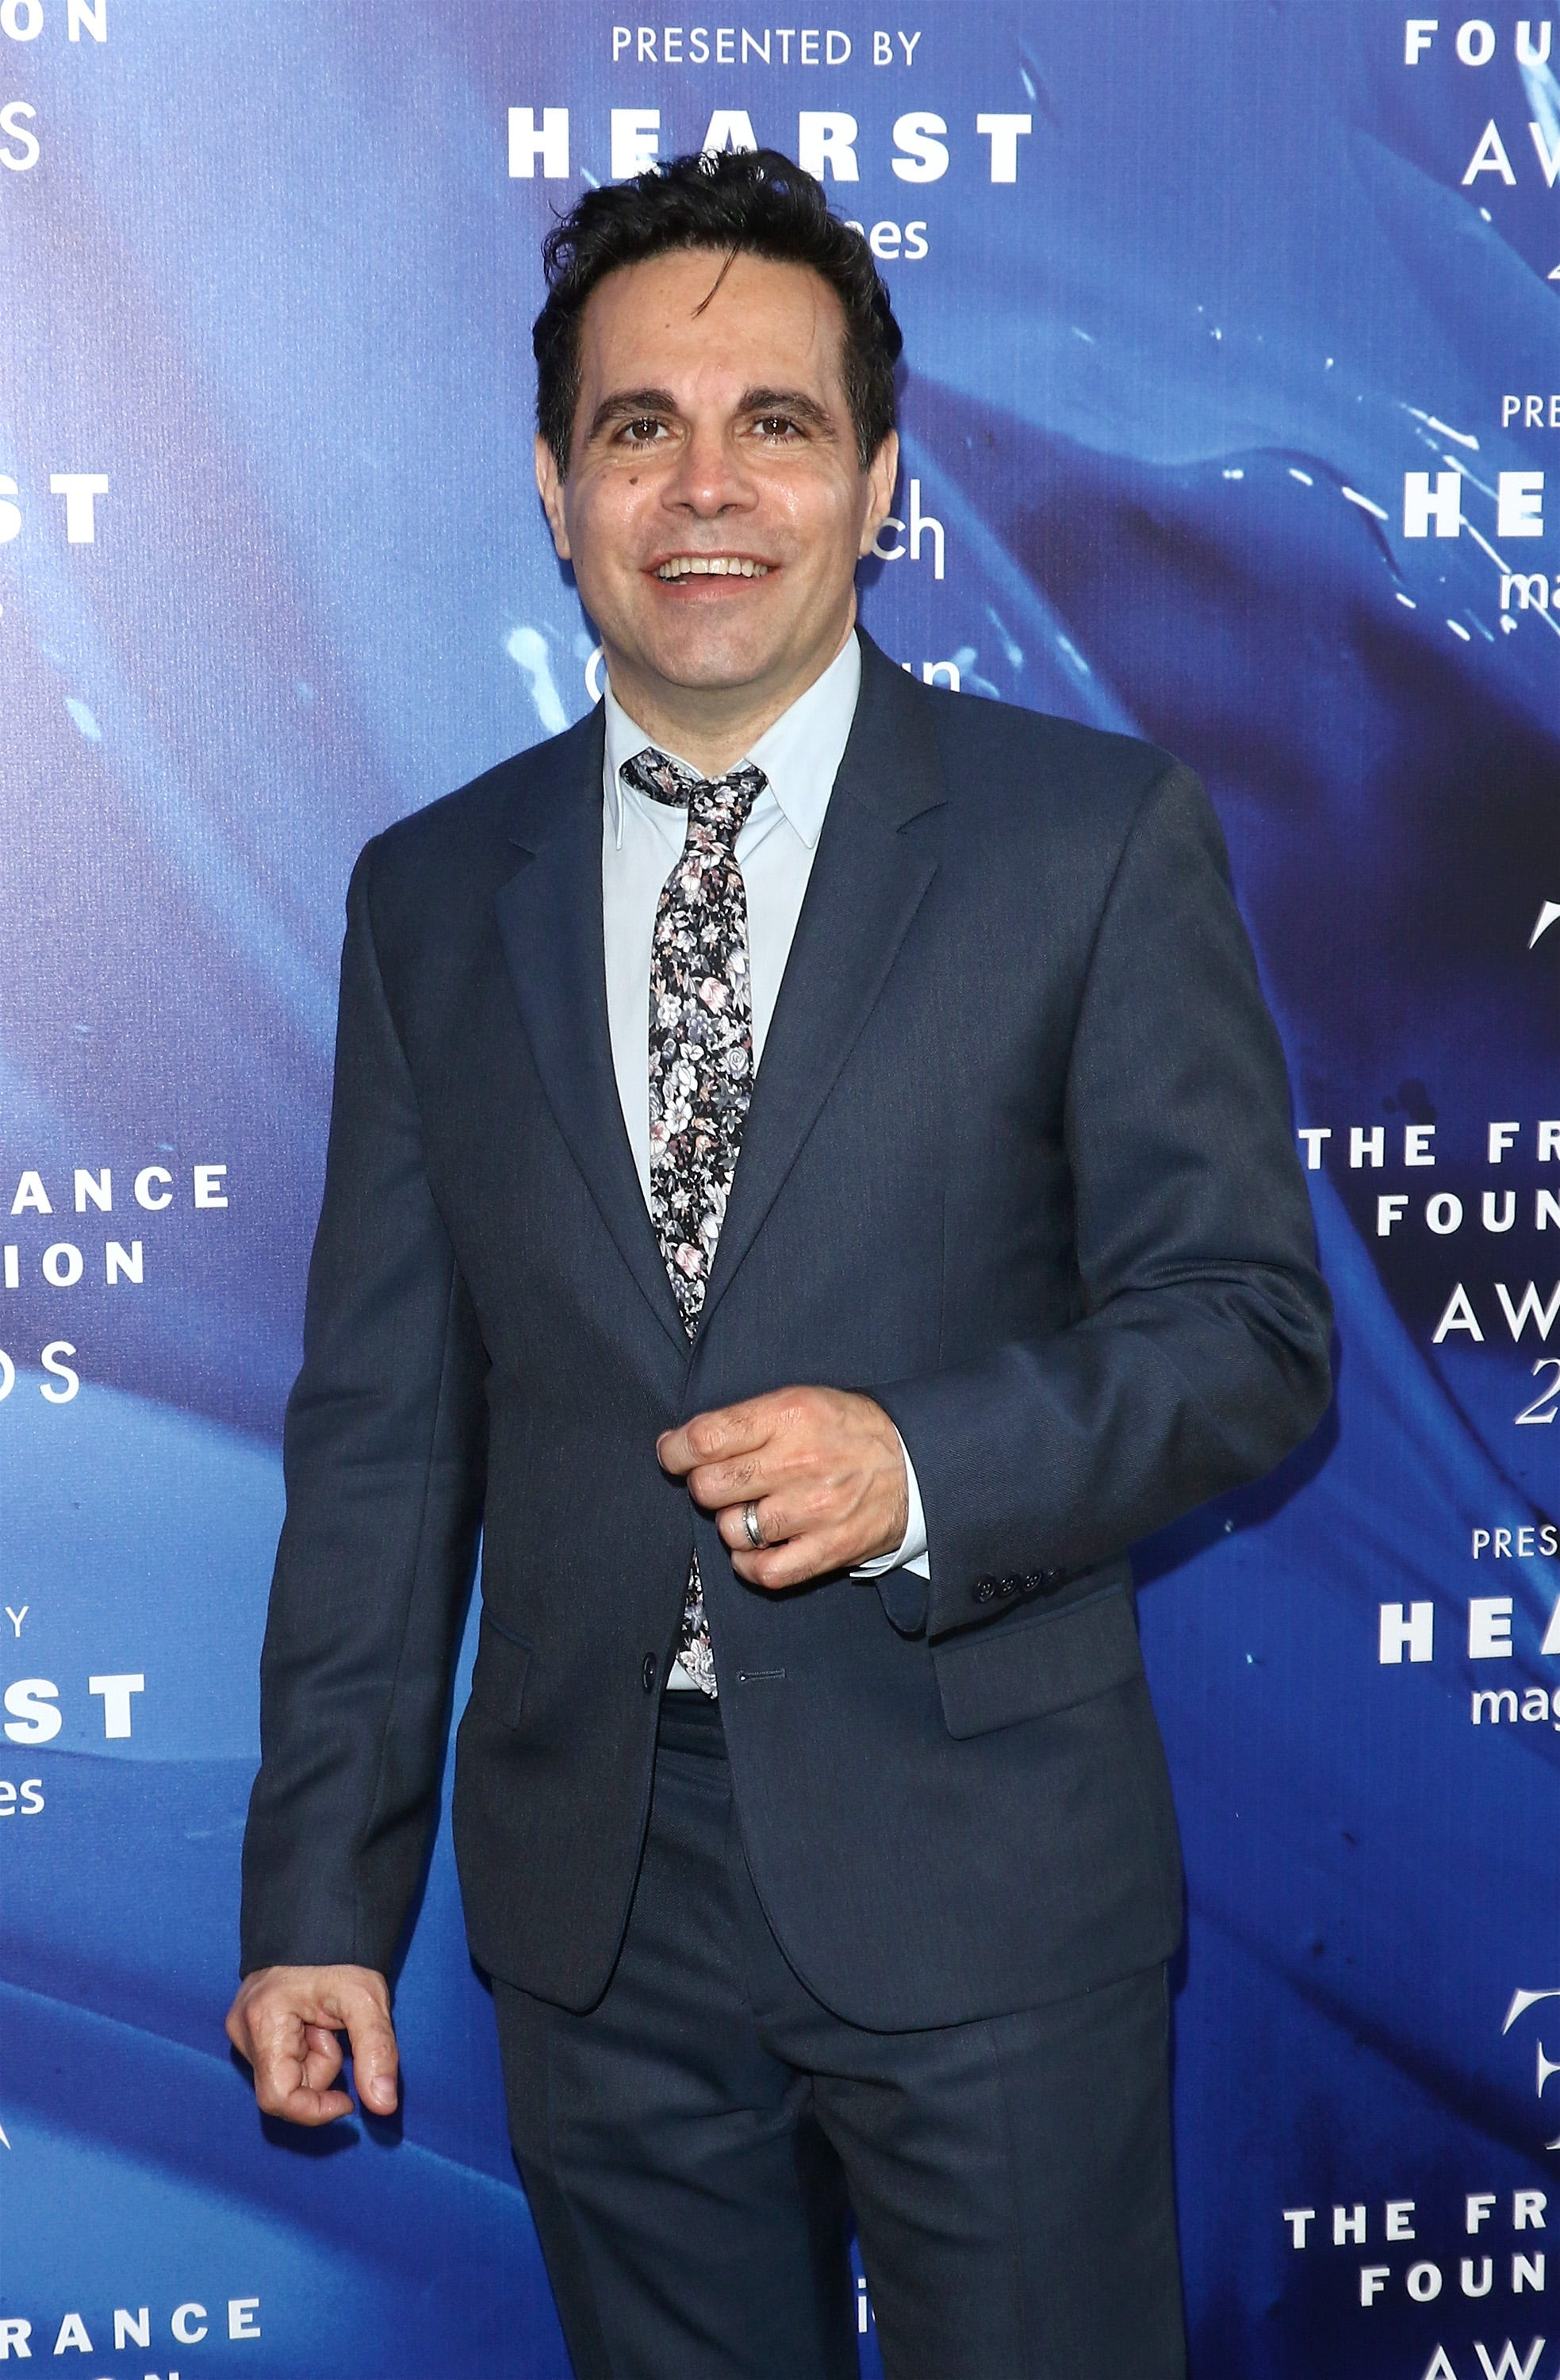 Mario Cantone gets the last word as Anthony Scaramucci on 'The President Show'